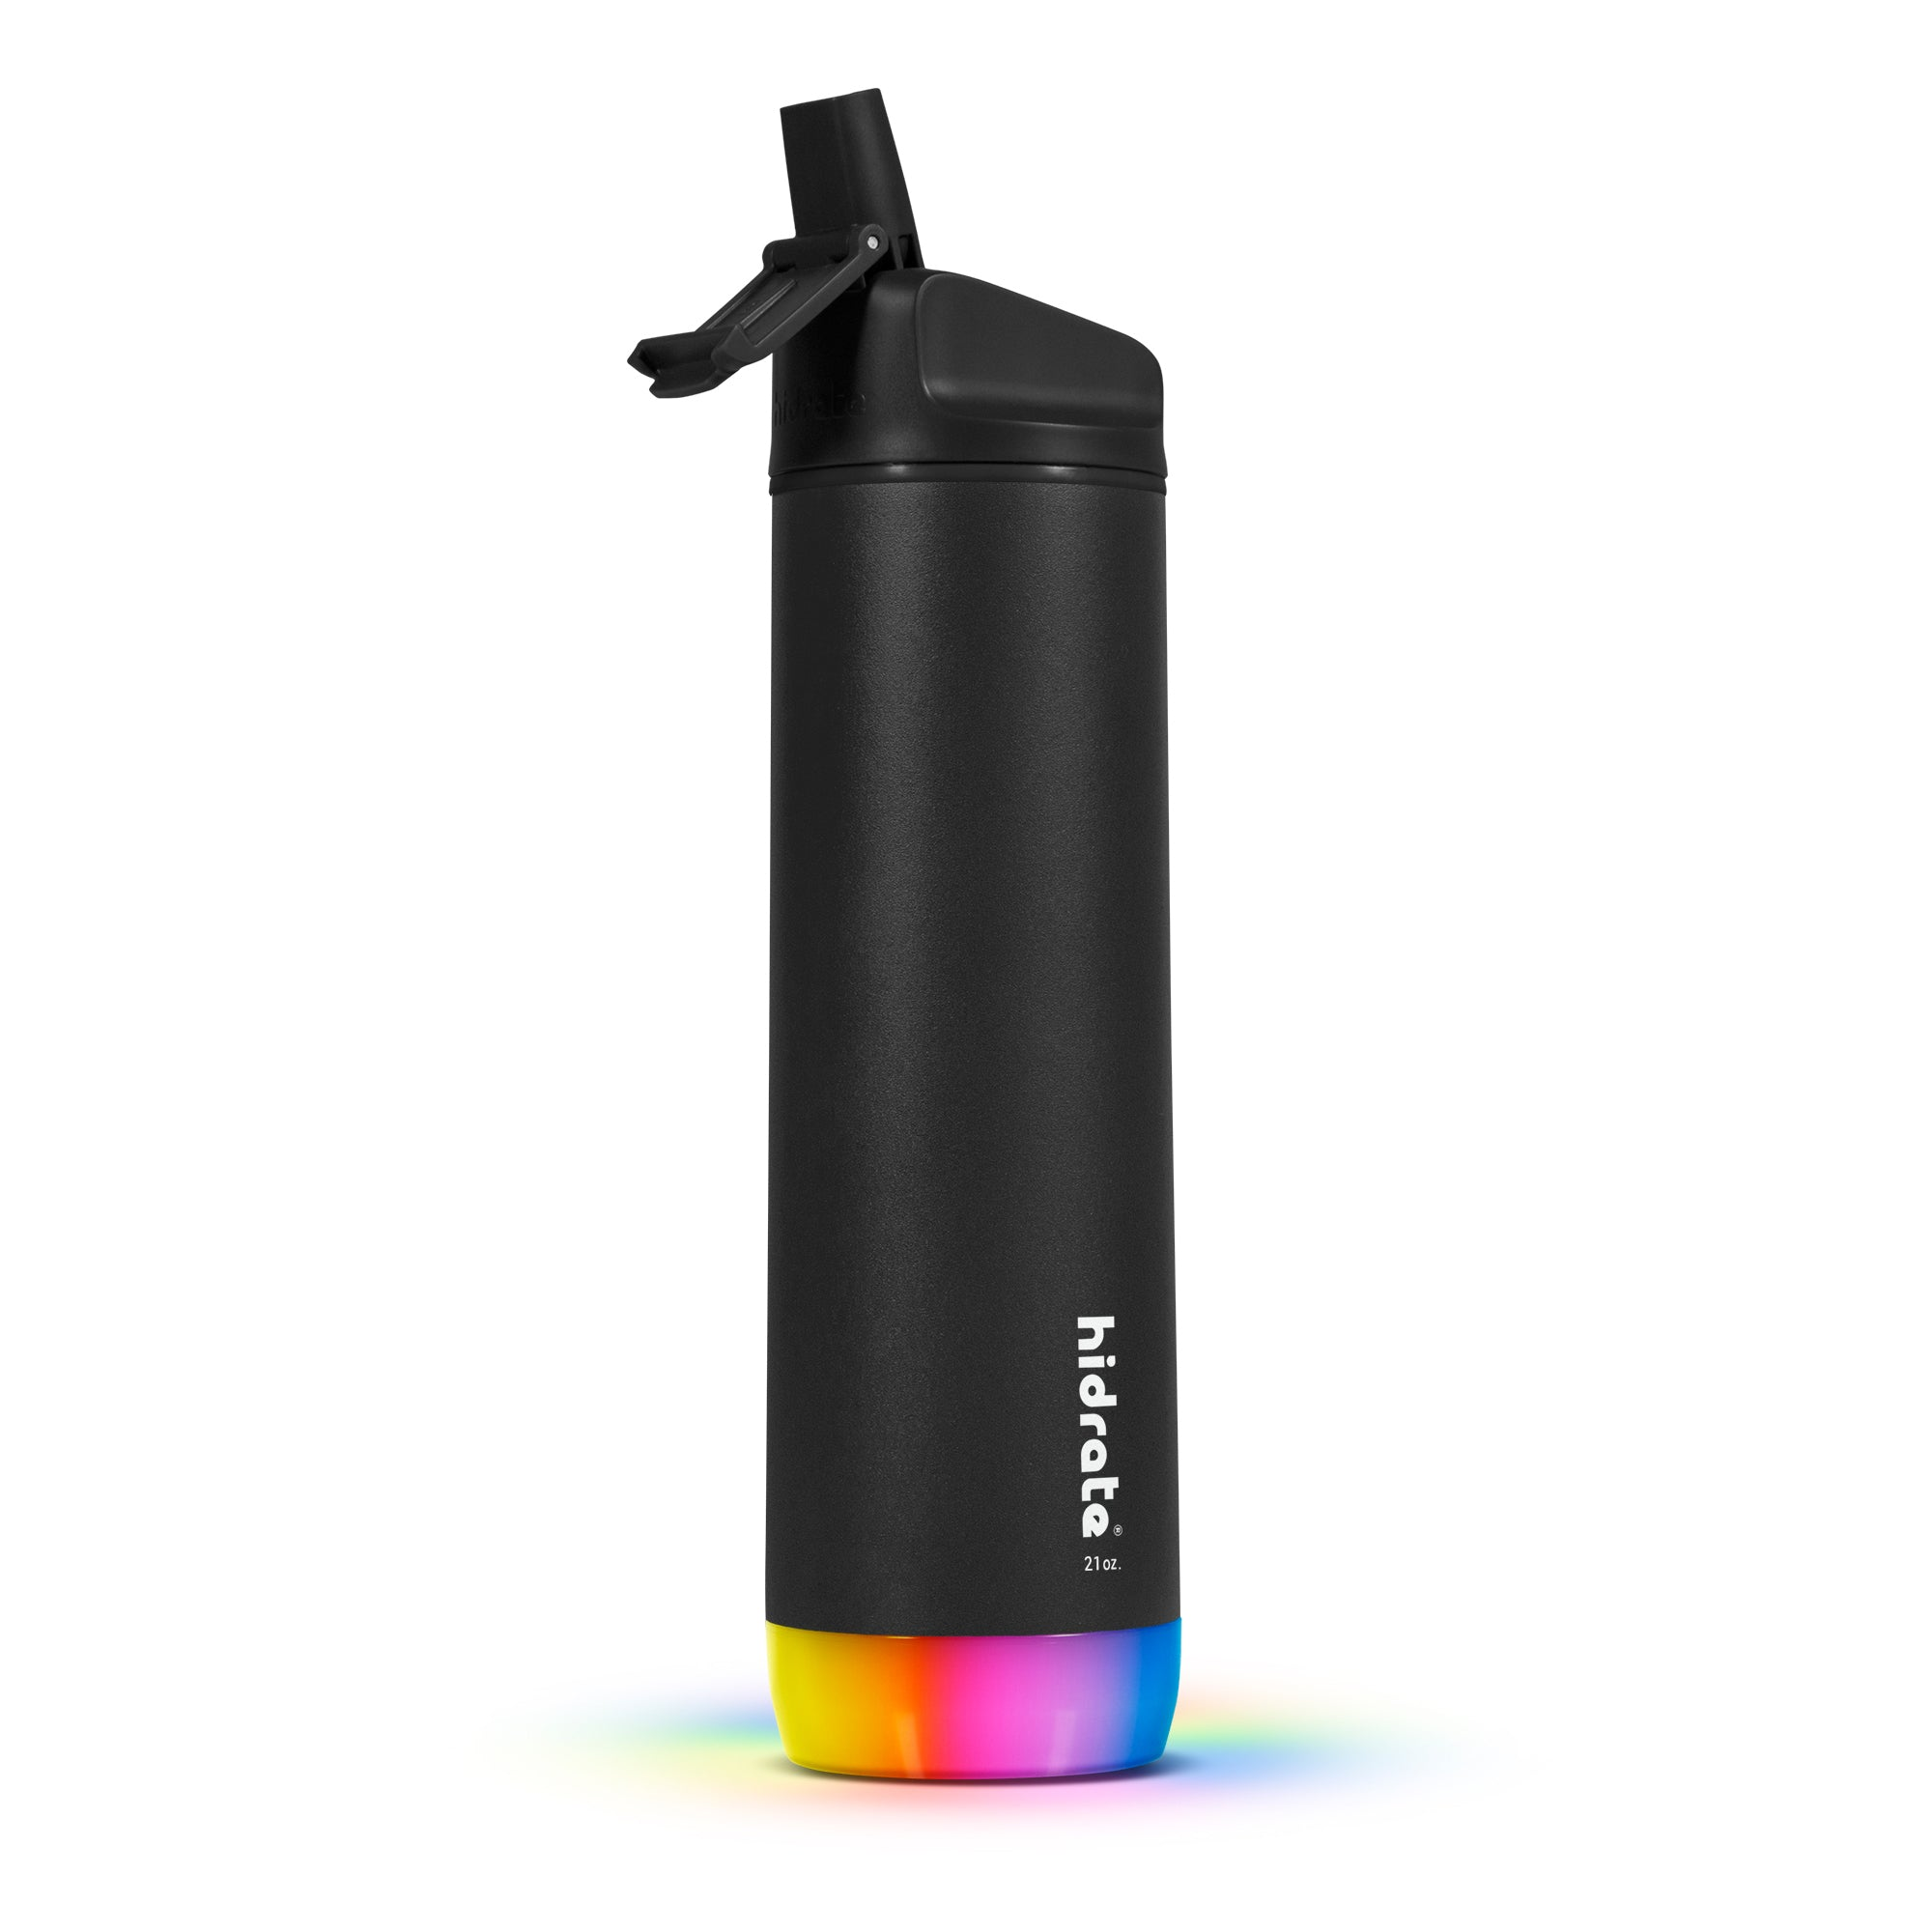 Hidratespark Steel Insulated Stainless Steel Smart Water Bottle App Hidrate Inc